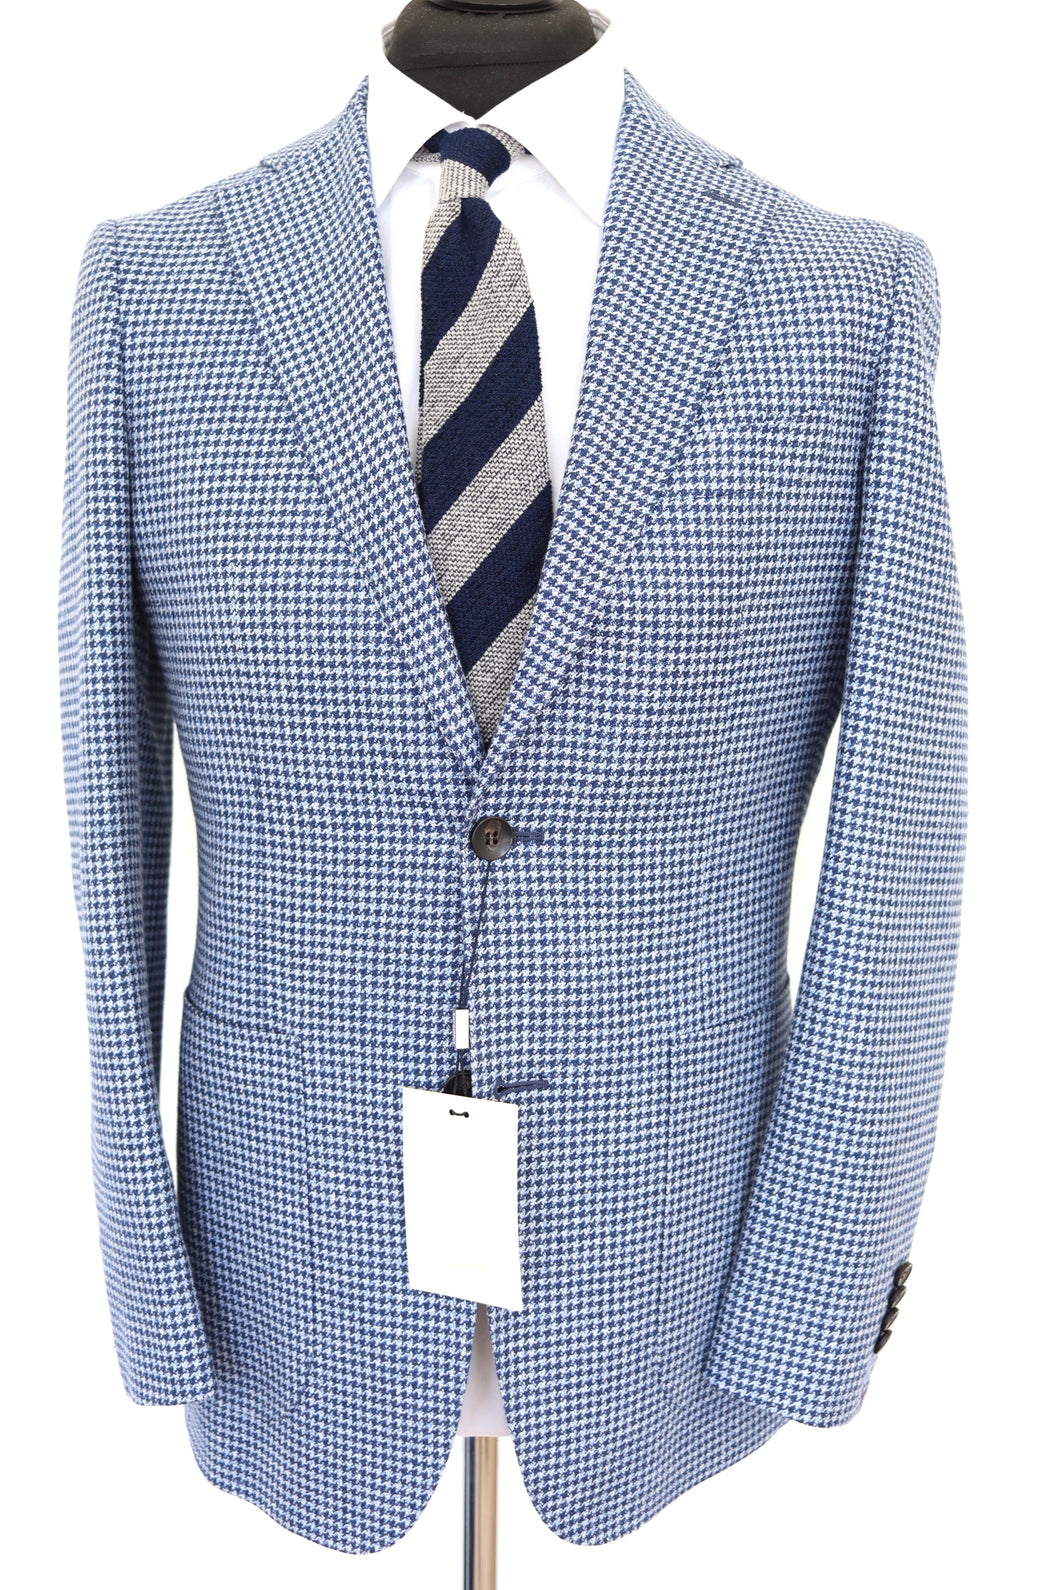 NWT Suitsupply Havana Light Blue Houndstooth Jacket - Size 38R